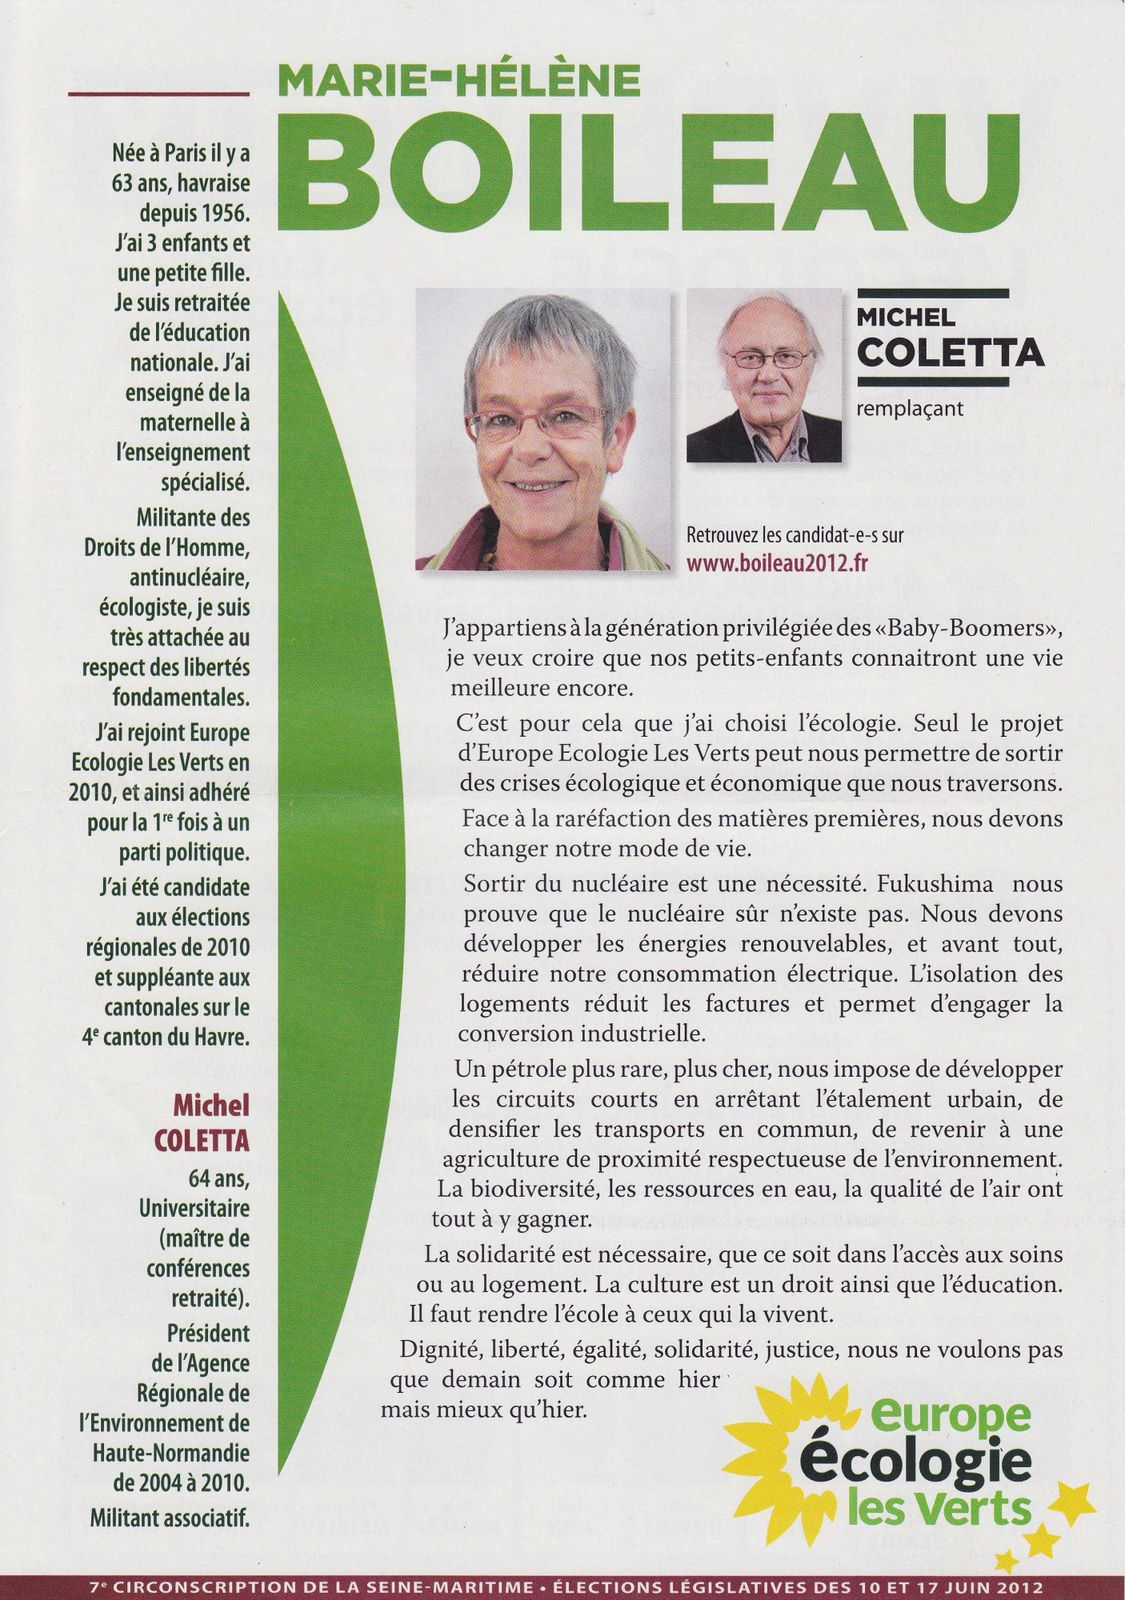 8 2012 Legislative 7 circon Bouileau europe ecologie vert